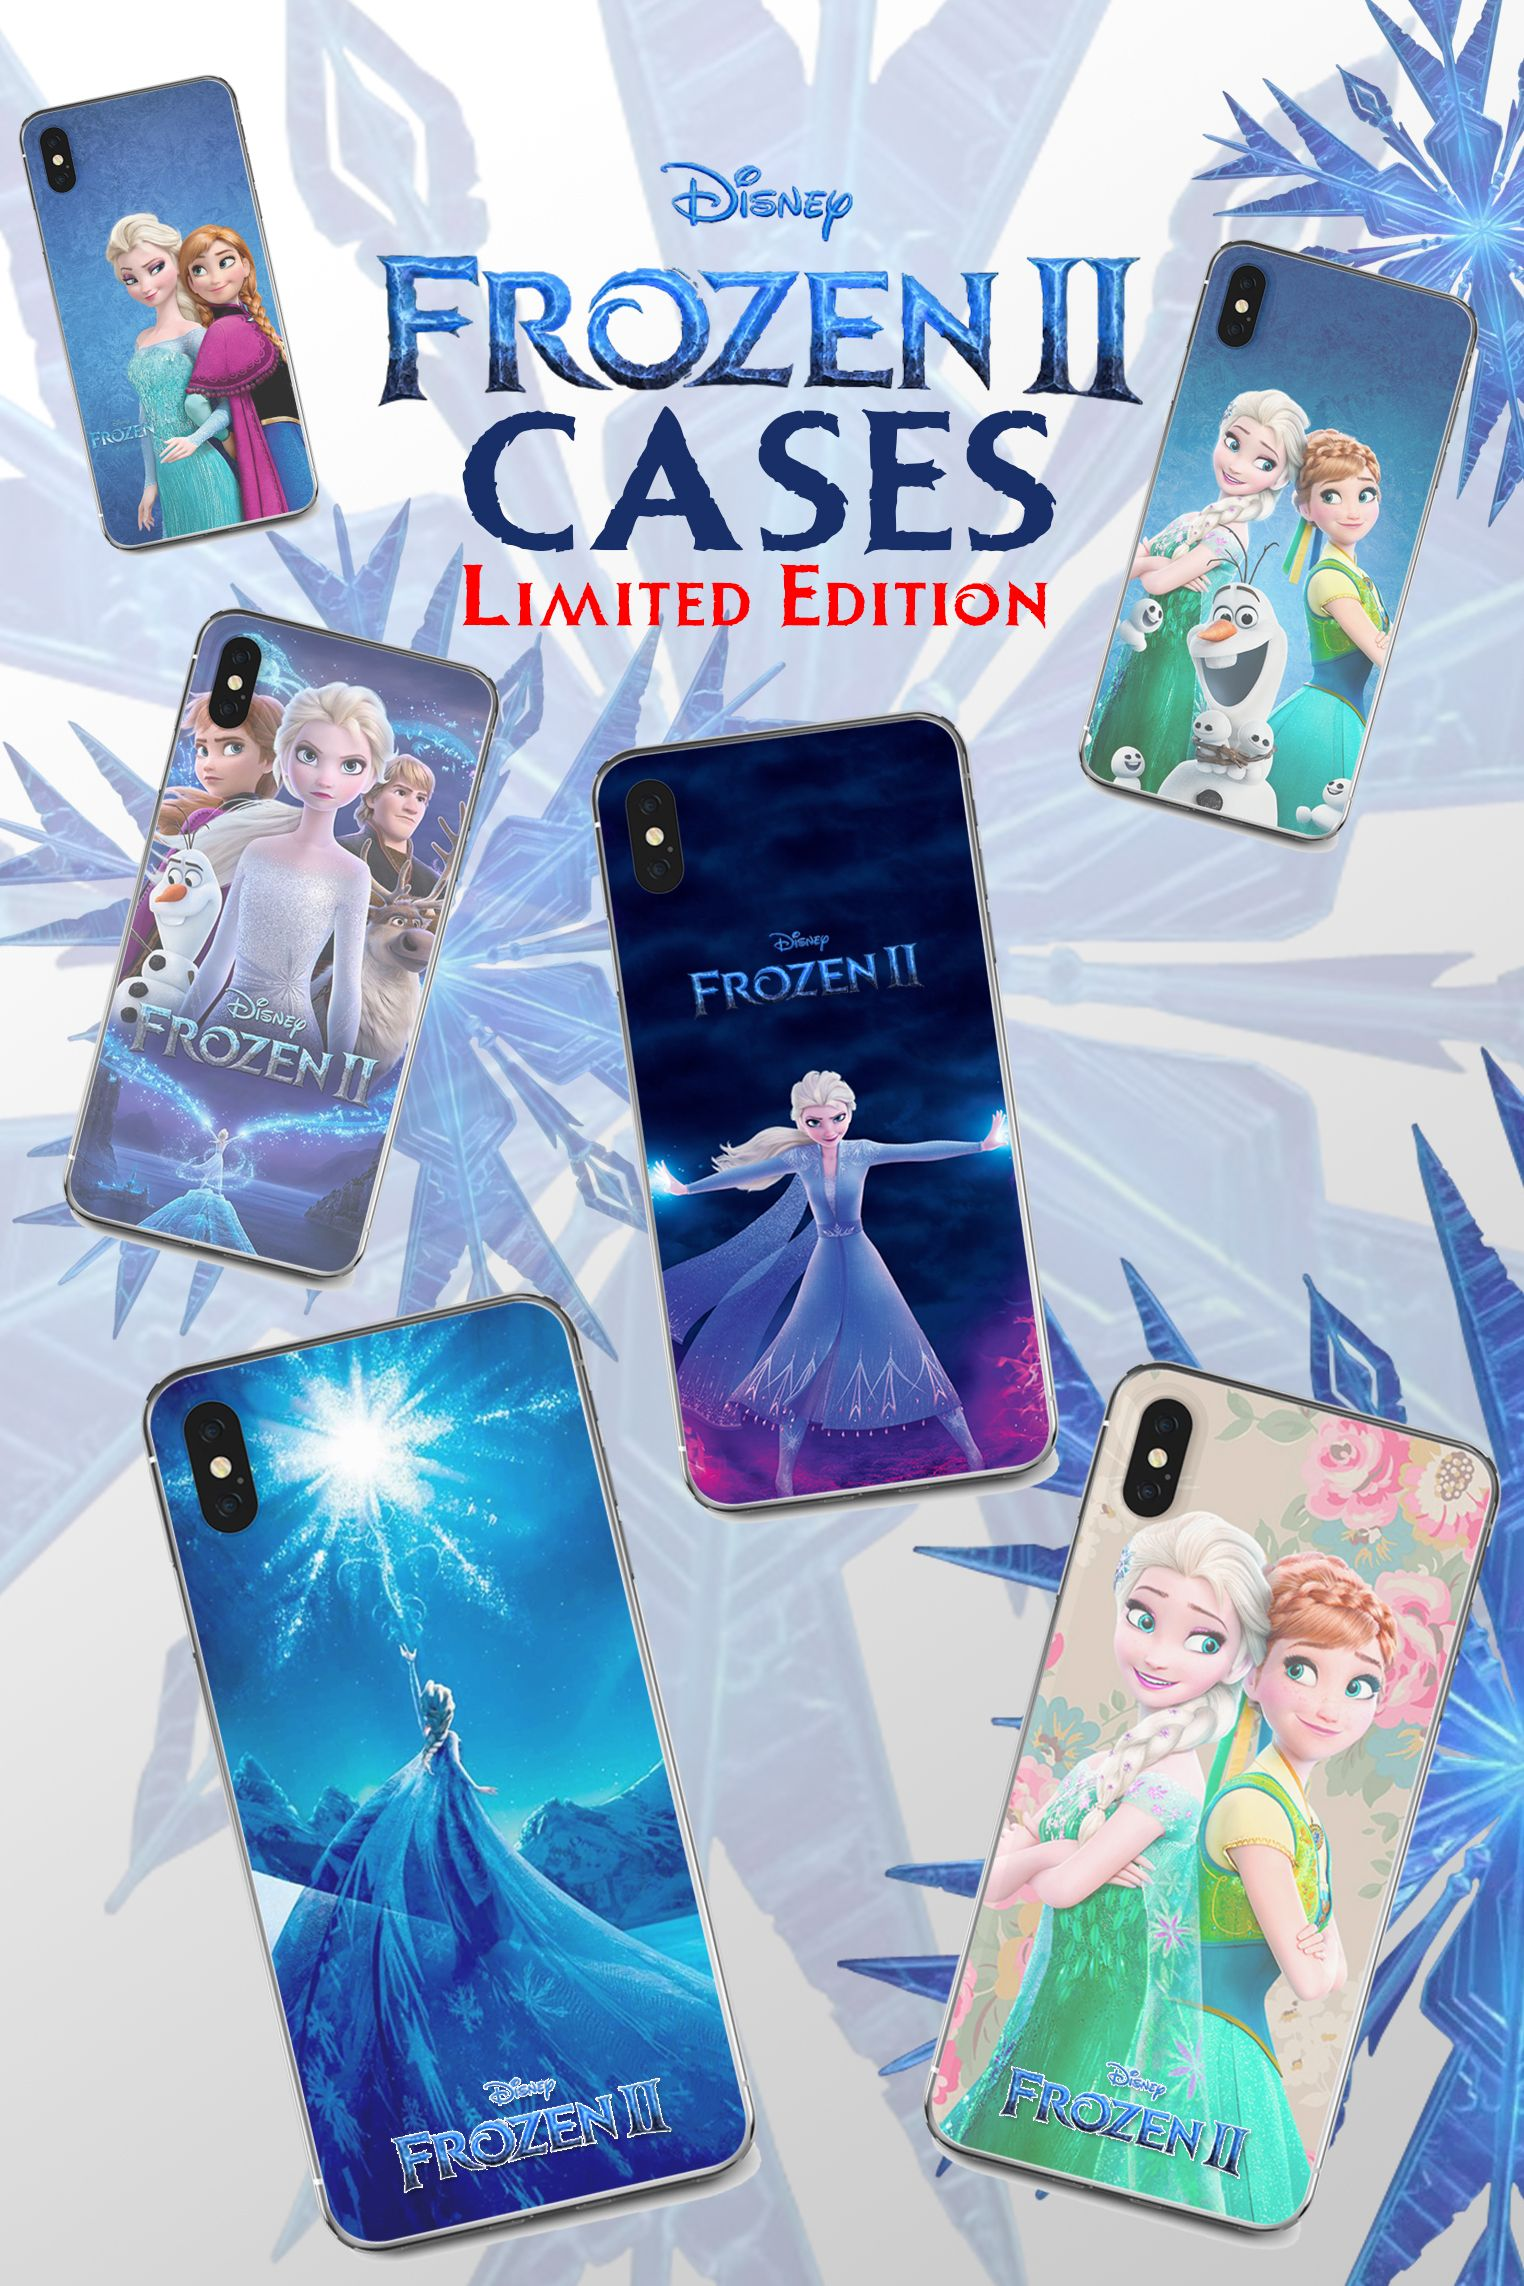 TOP FROZEN 2 CASES THAT YOU WILL LOVE! Android